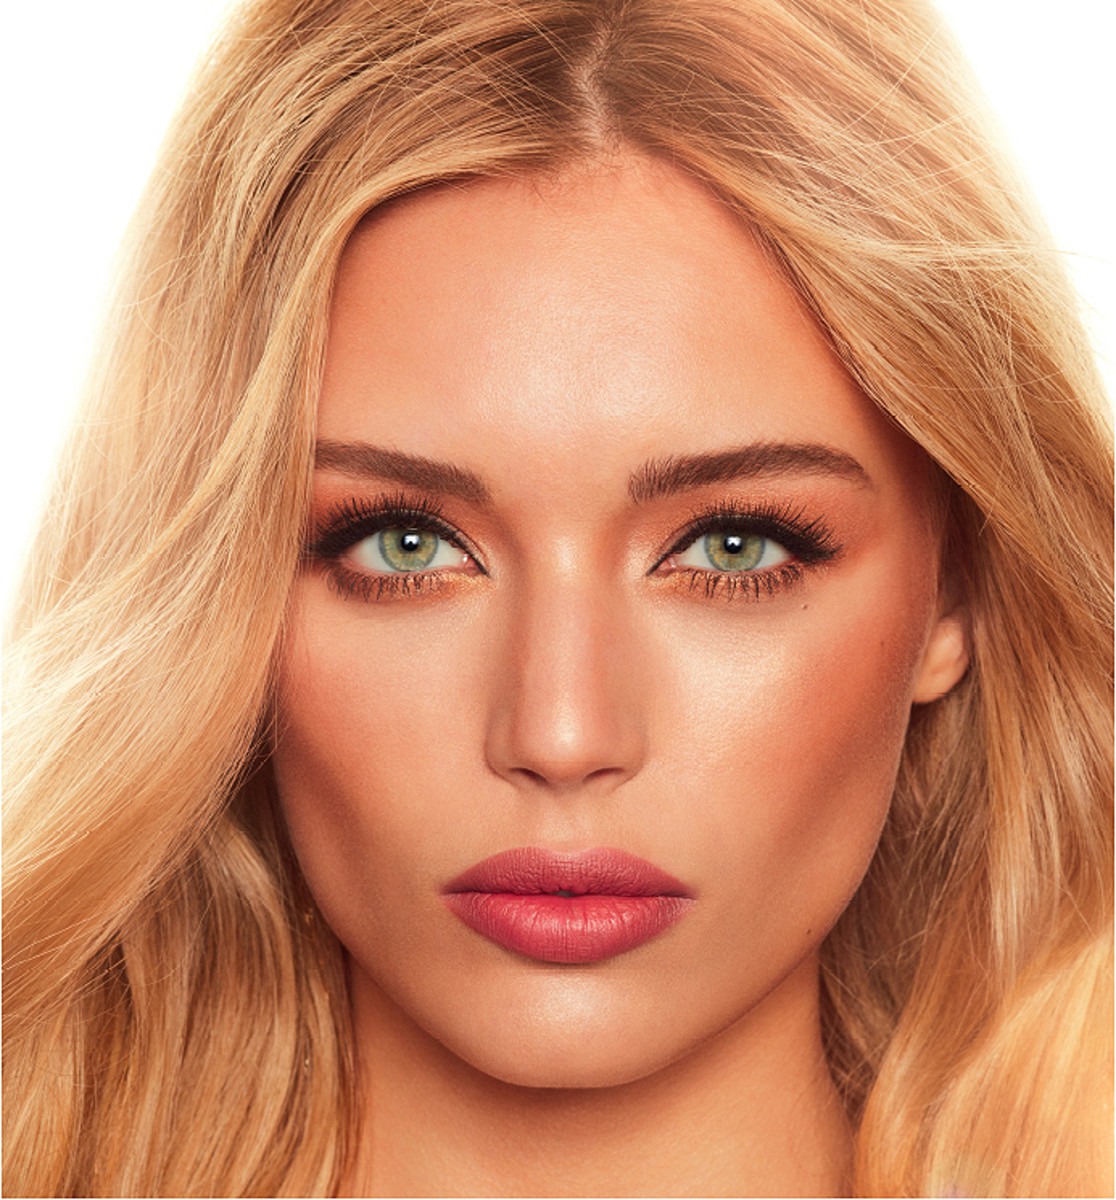 charlotte tilbury holiday 2016 dreamy look with Legendary Muse shadows